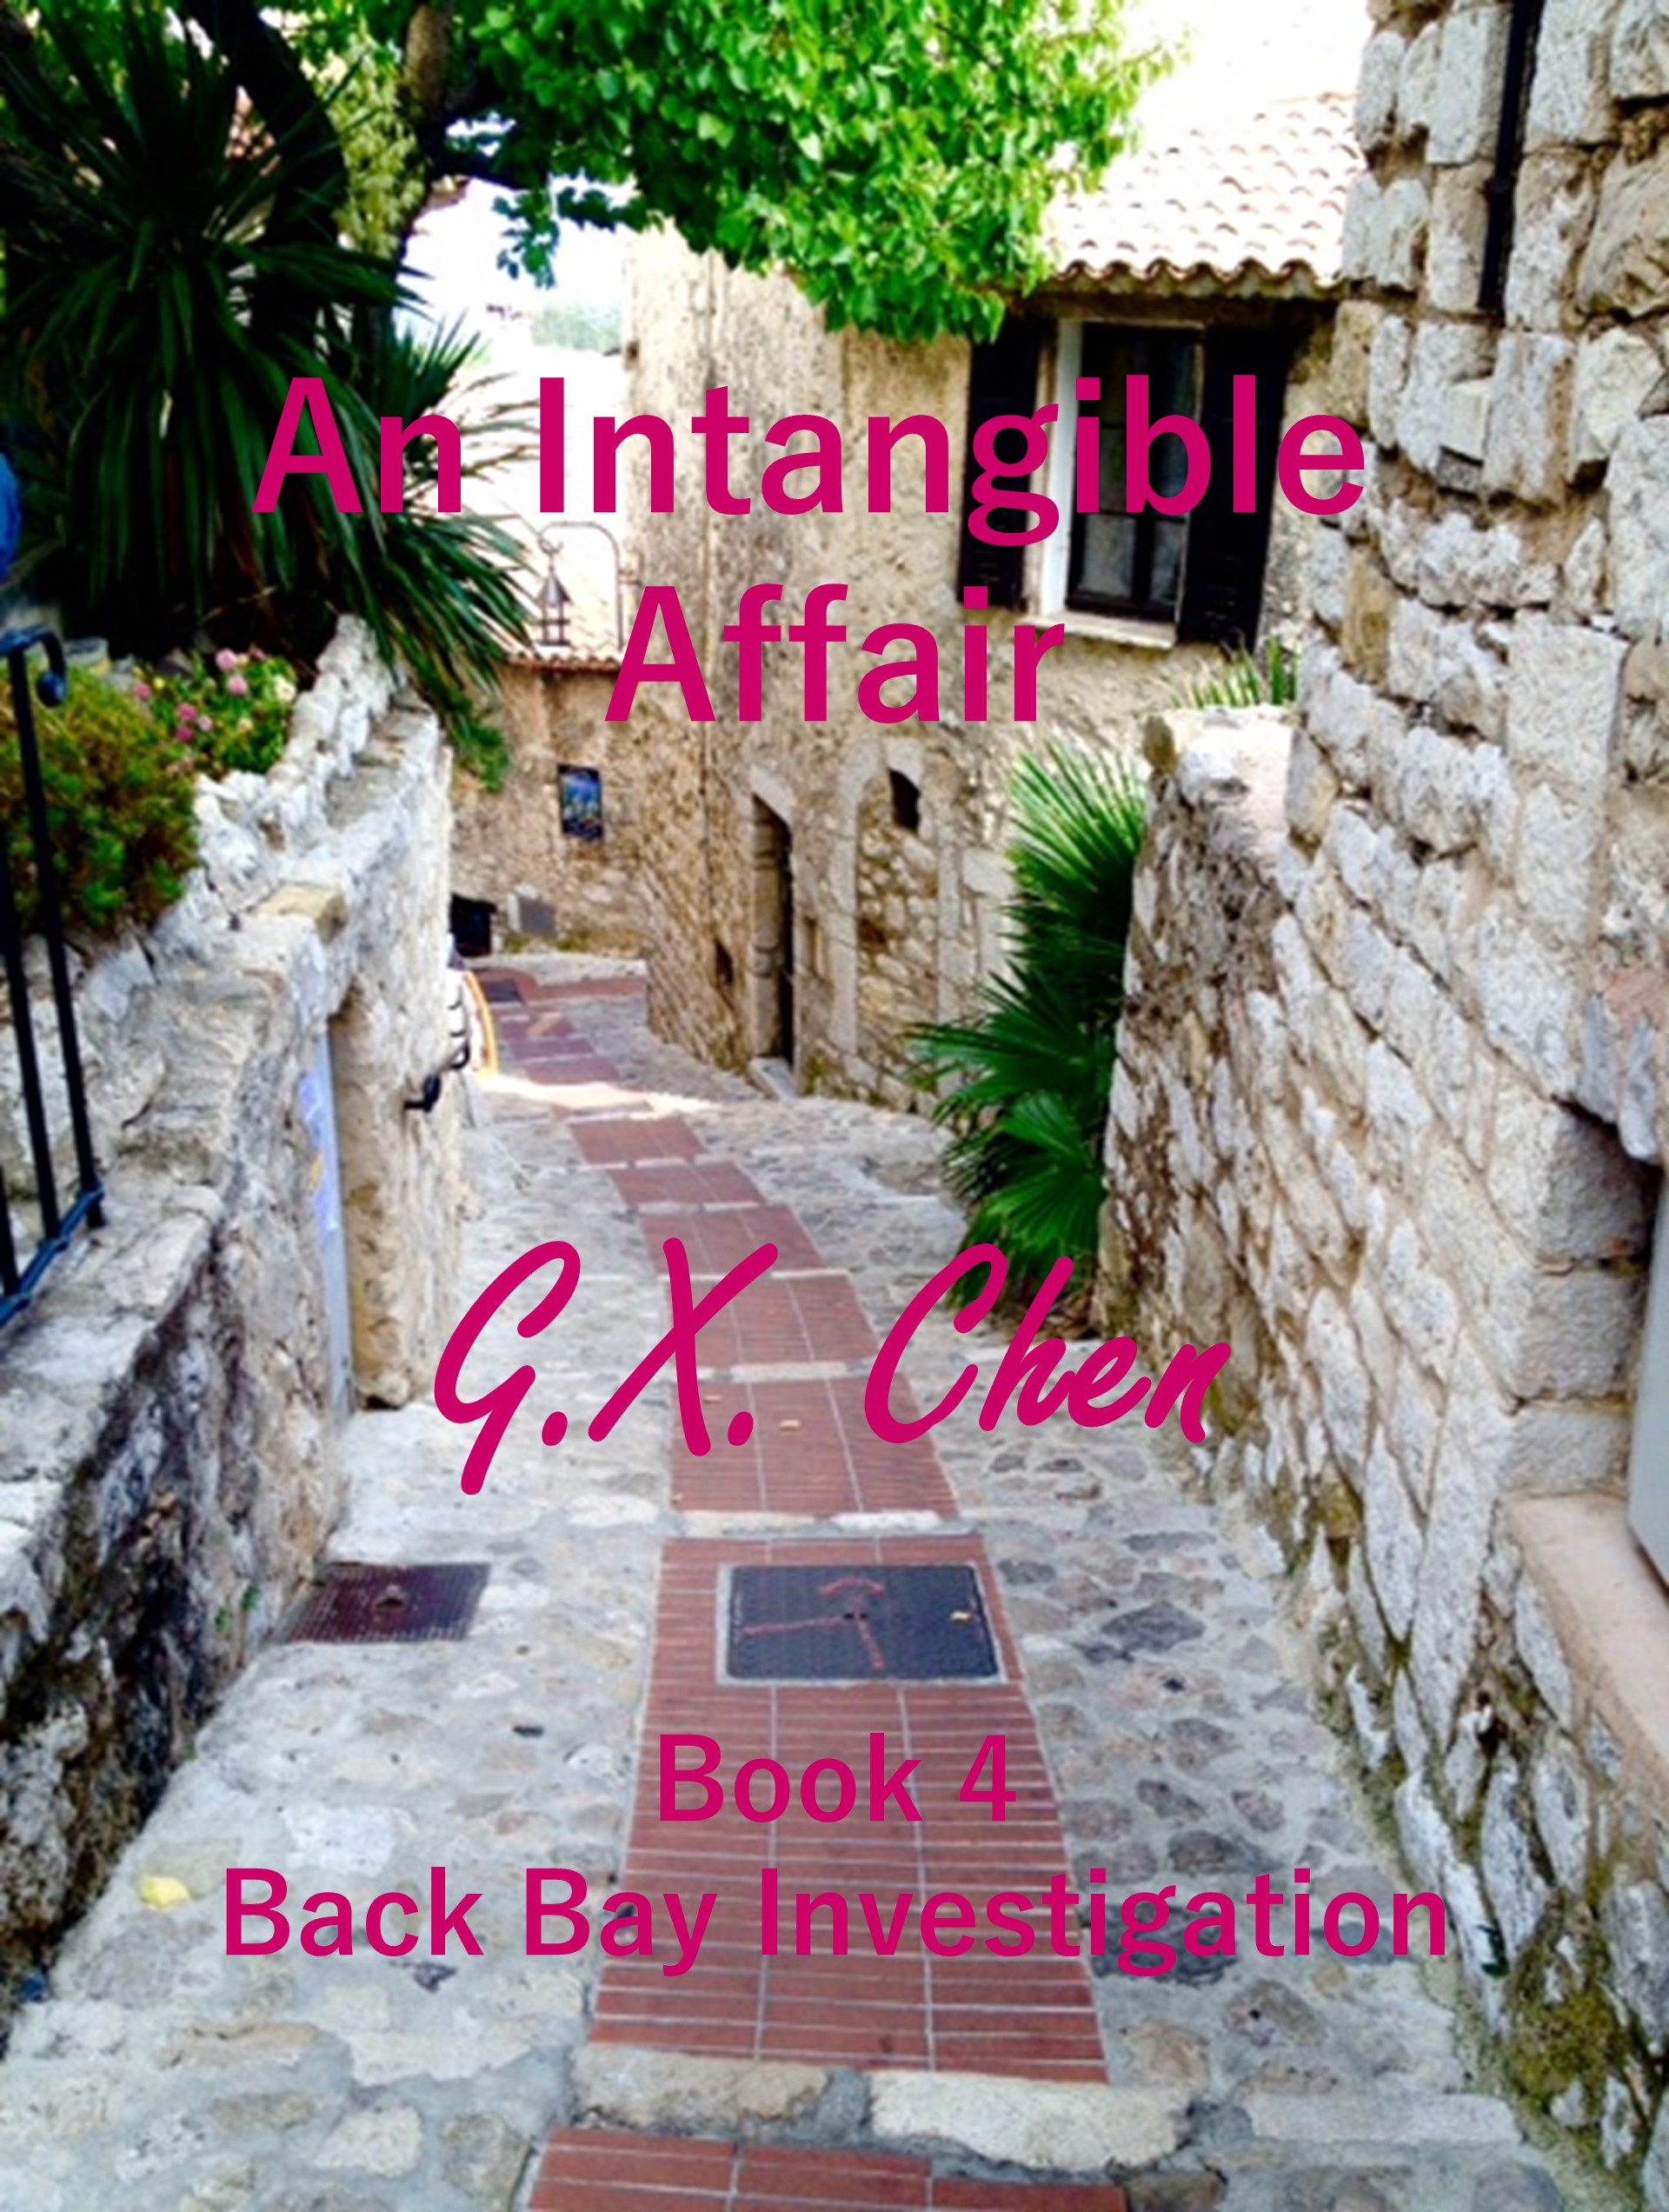 An Intangible Affair